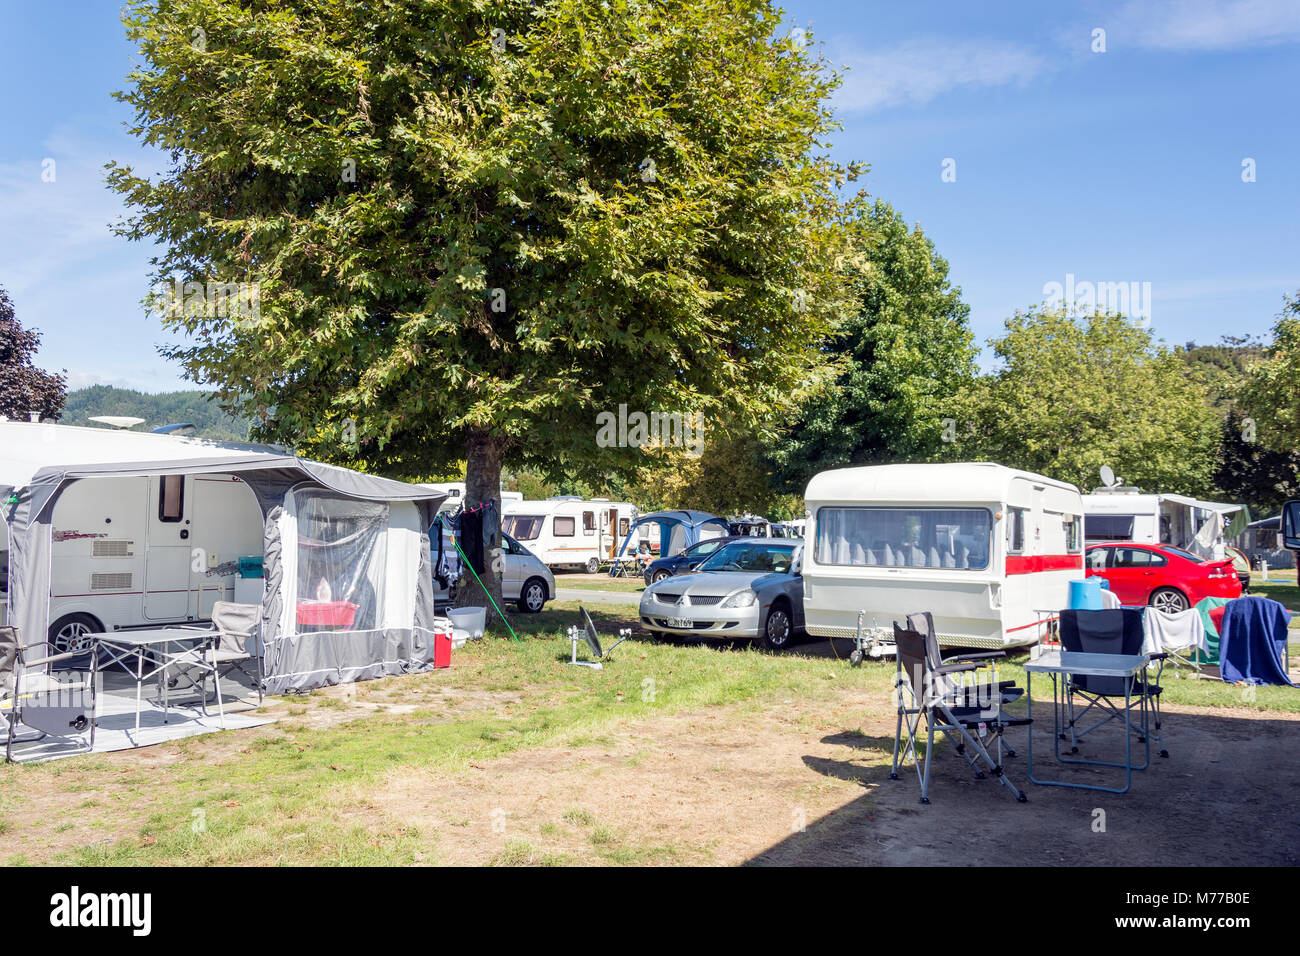 Campsite at Kaiteriteri Recreation Reserve, Kaiteriteri Beach, Kaiteriteri, Tasman District, New Zealand - Stock Image